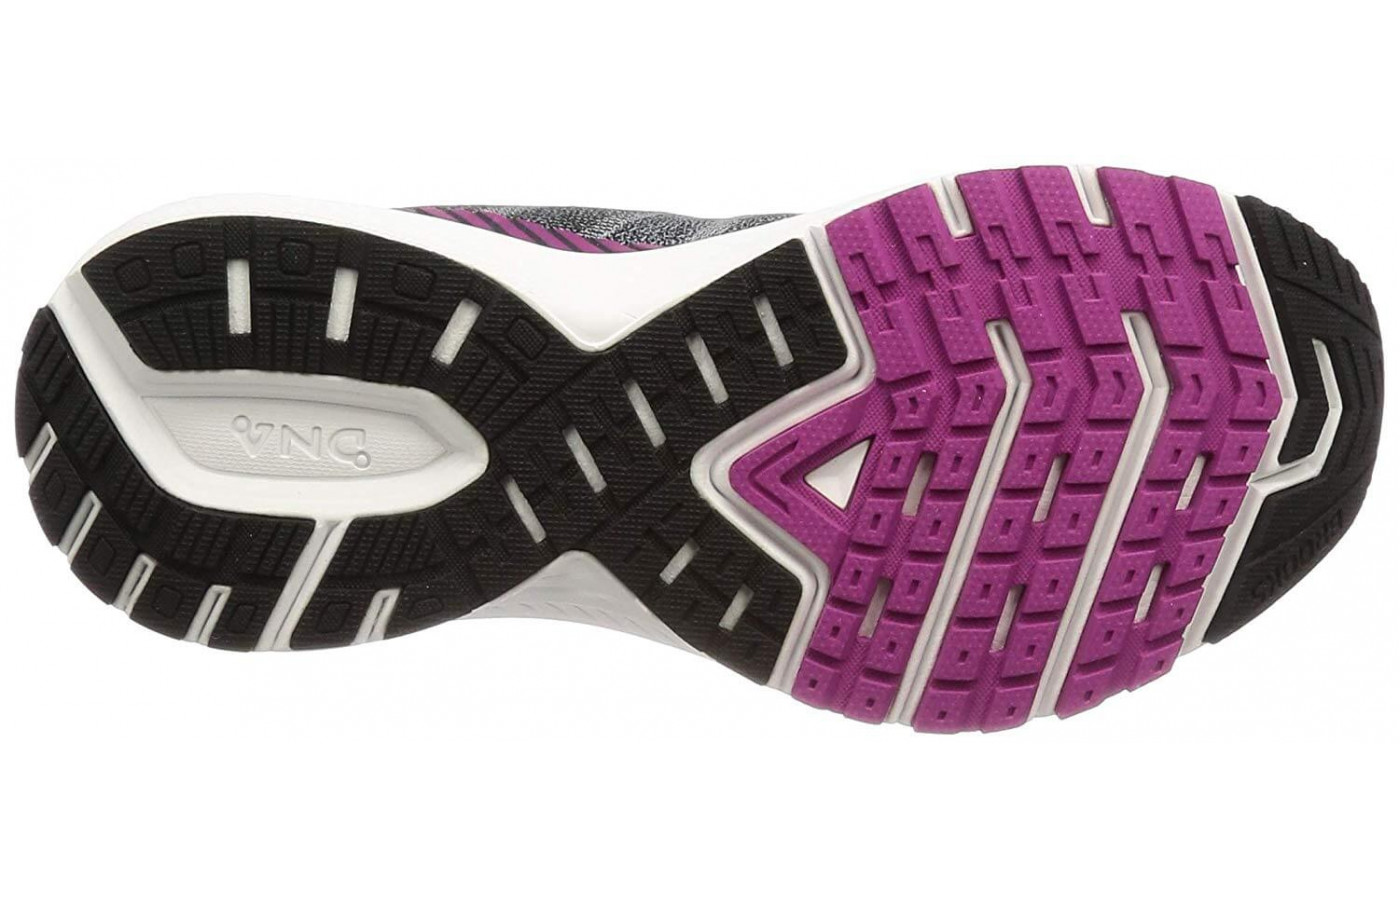 A blown rubber compound covers the Ravenna 10's outsole.